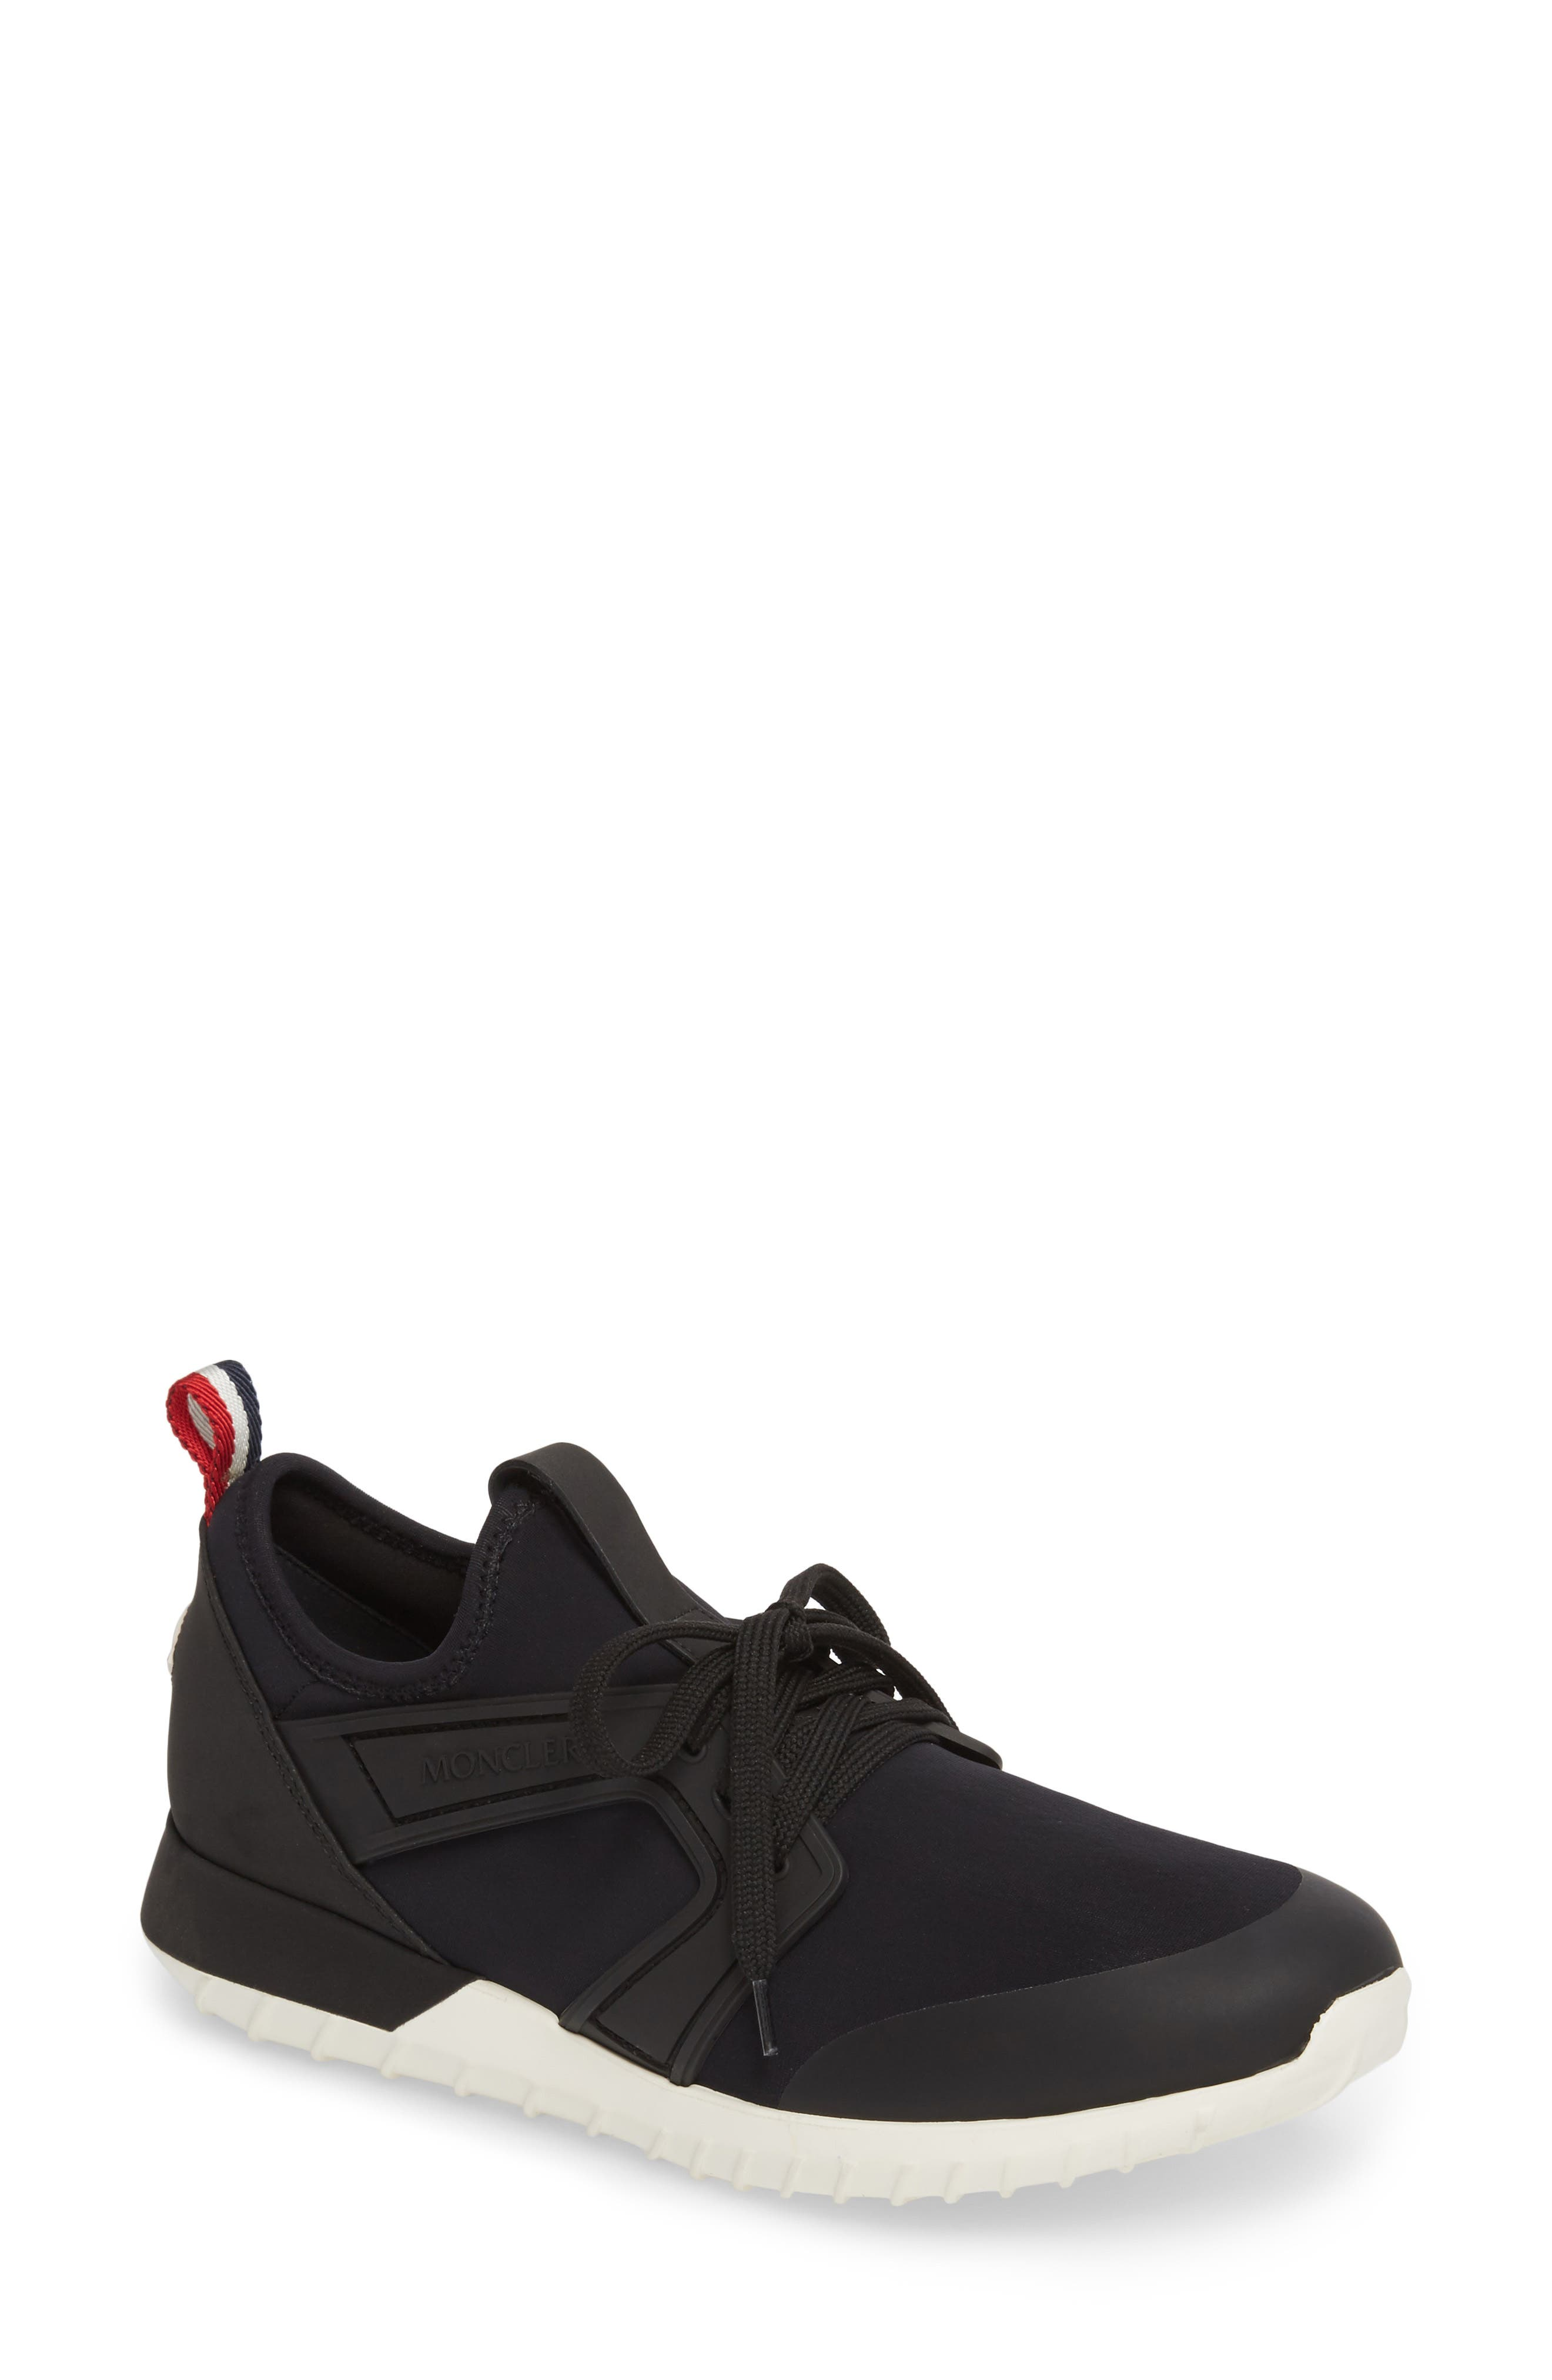 Meline Lace-Up Sneaker,                         Main,                         color, Black